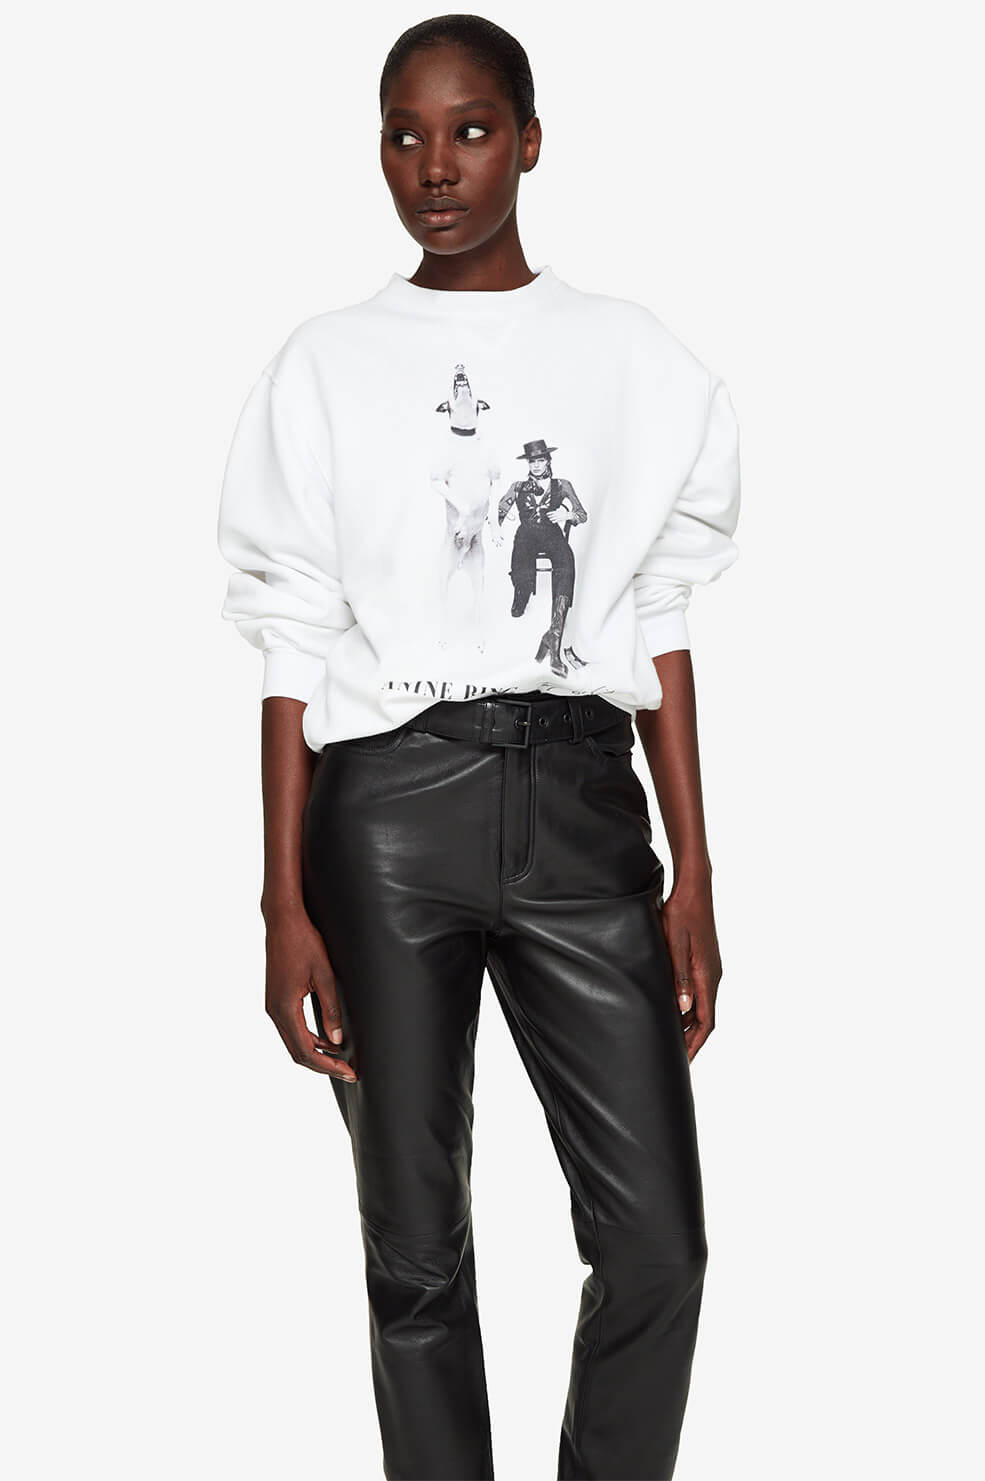 ANINE BING Ramona Sweatshirt AB X TO David Bowie - White